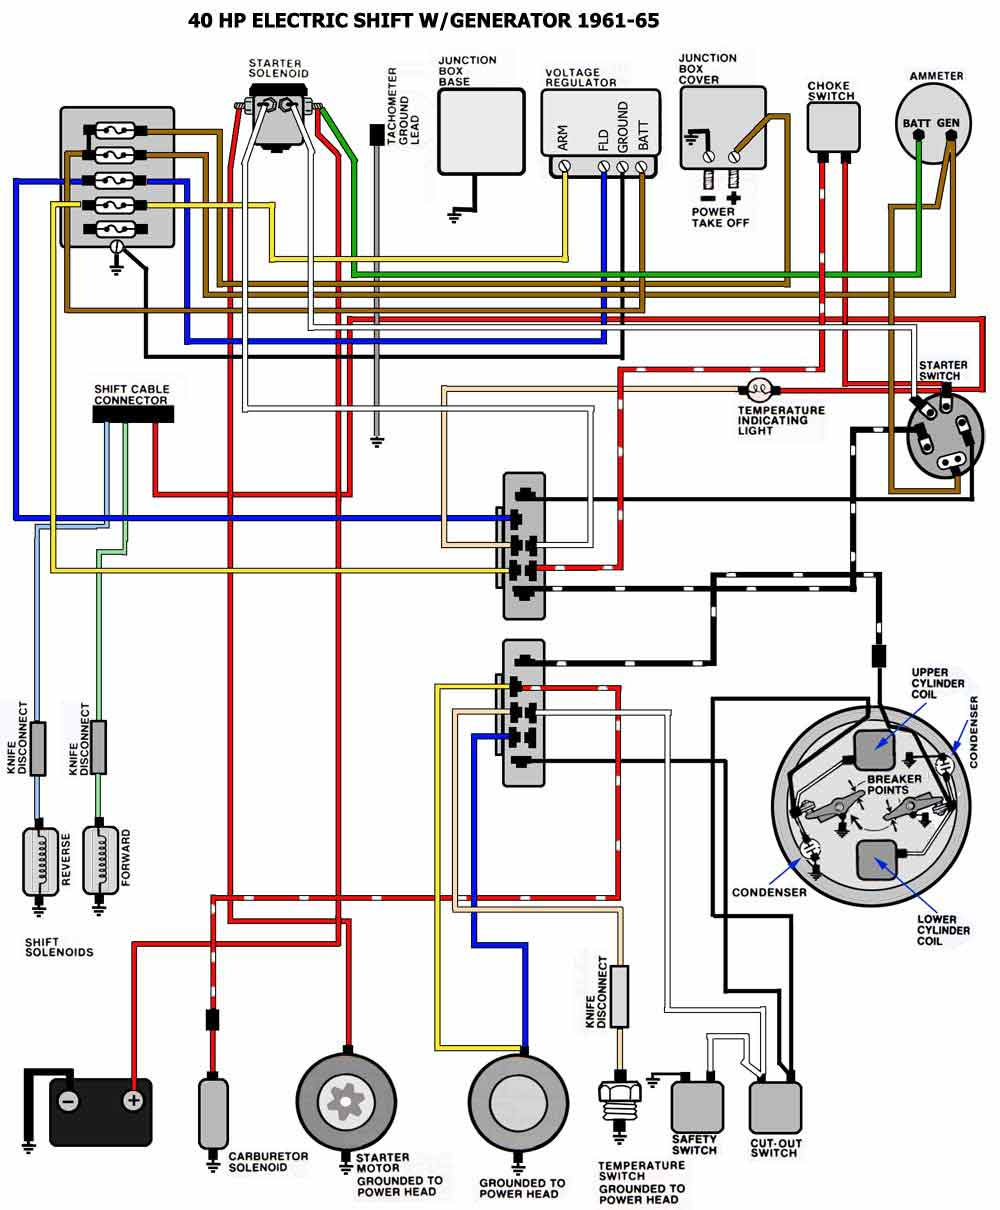 20 Hp Honda Engine Wiring Diagram from maxrules.com